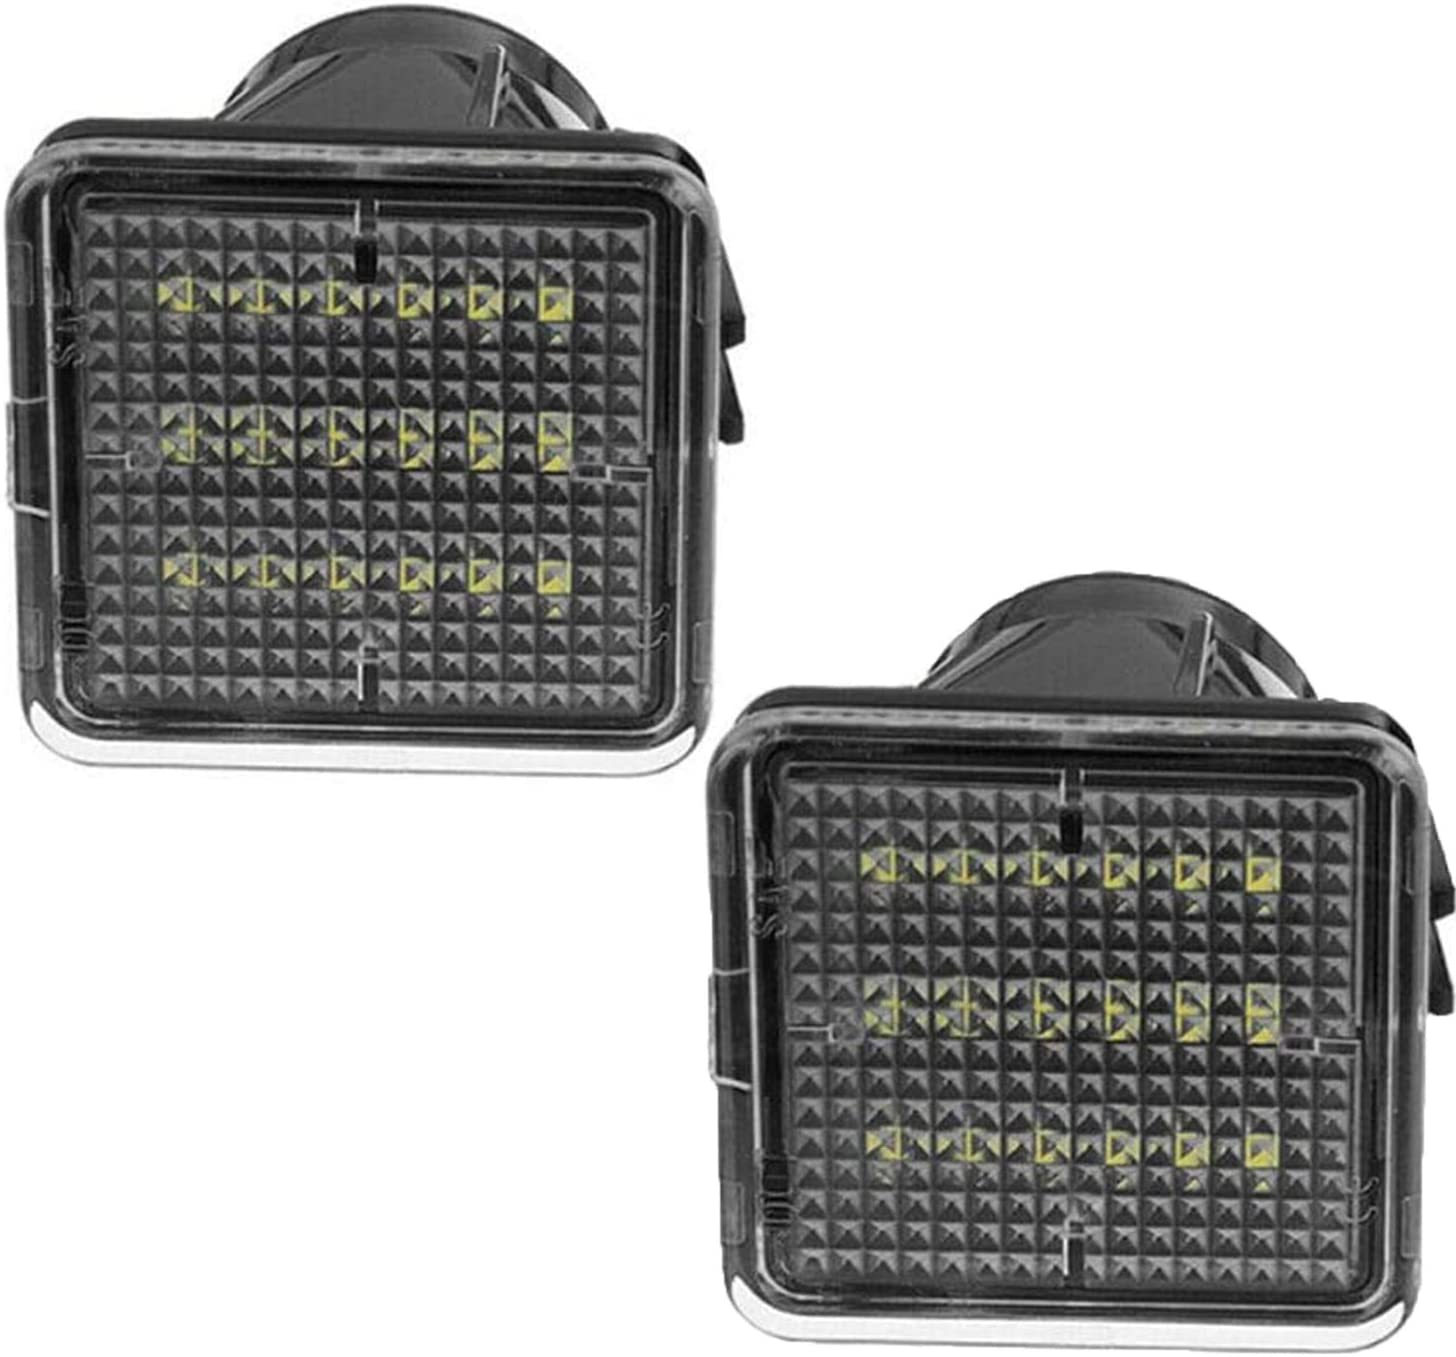 SZMWL 2pcs LED License Plate Light Assembly Toyota for Recommendation Lamp Taco Translated